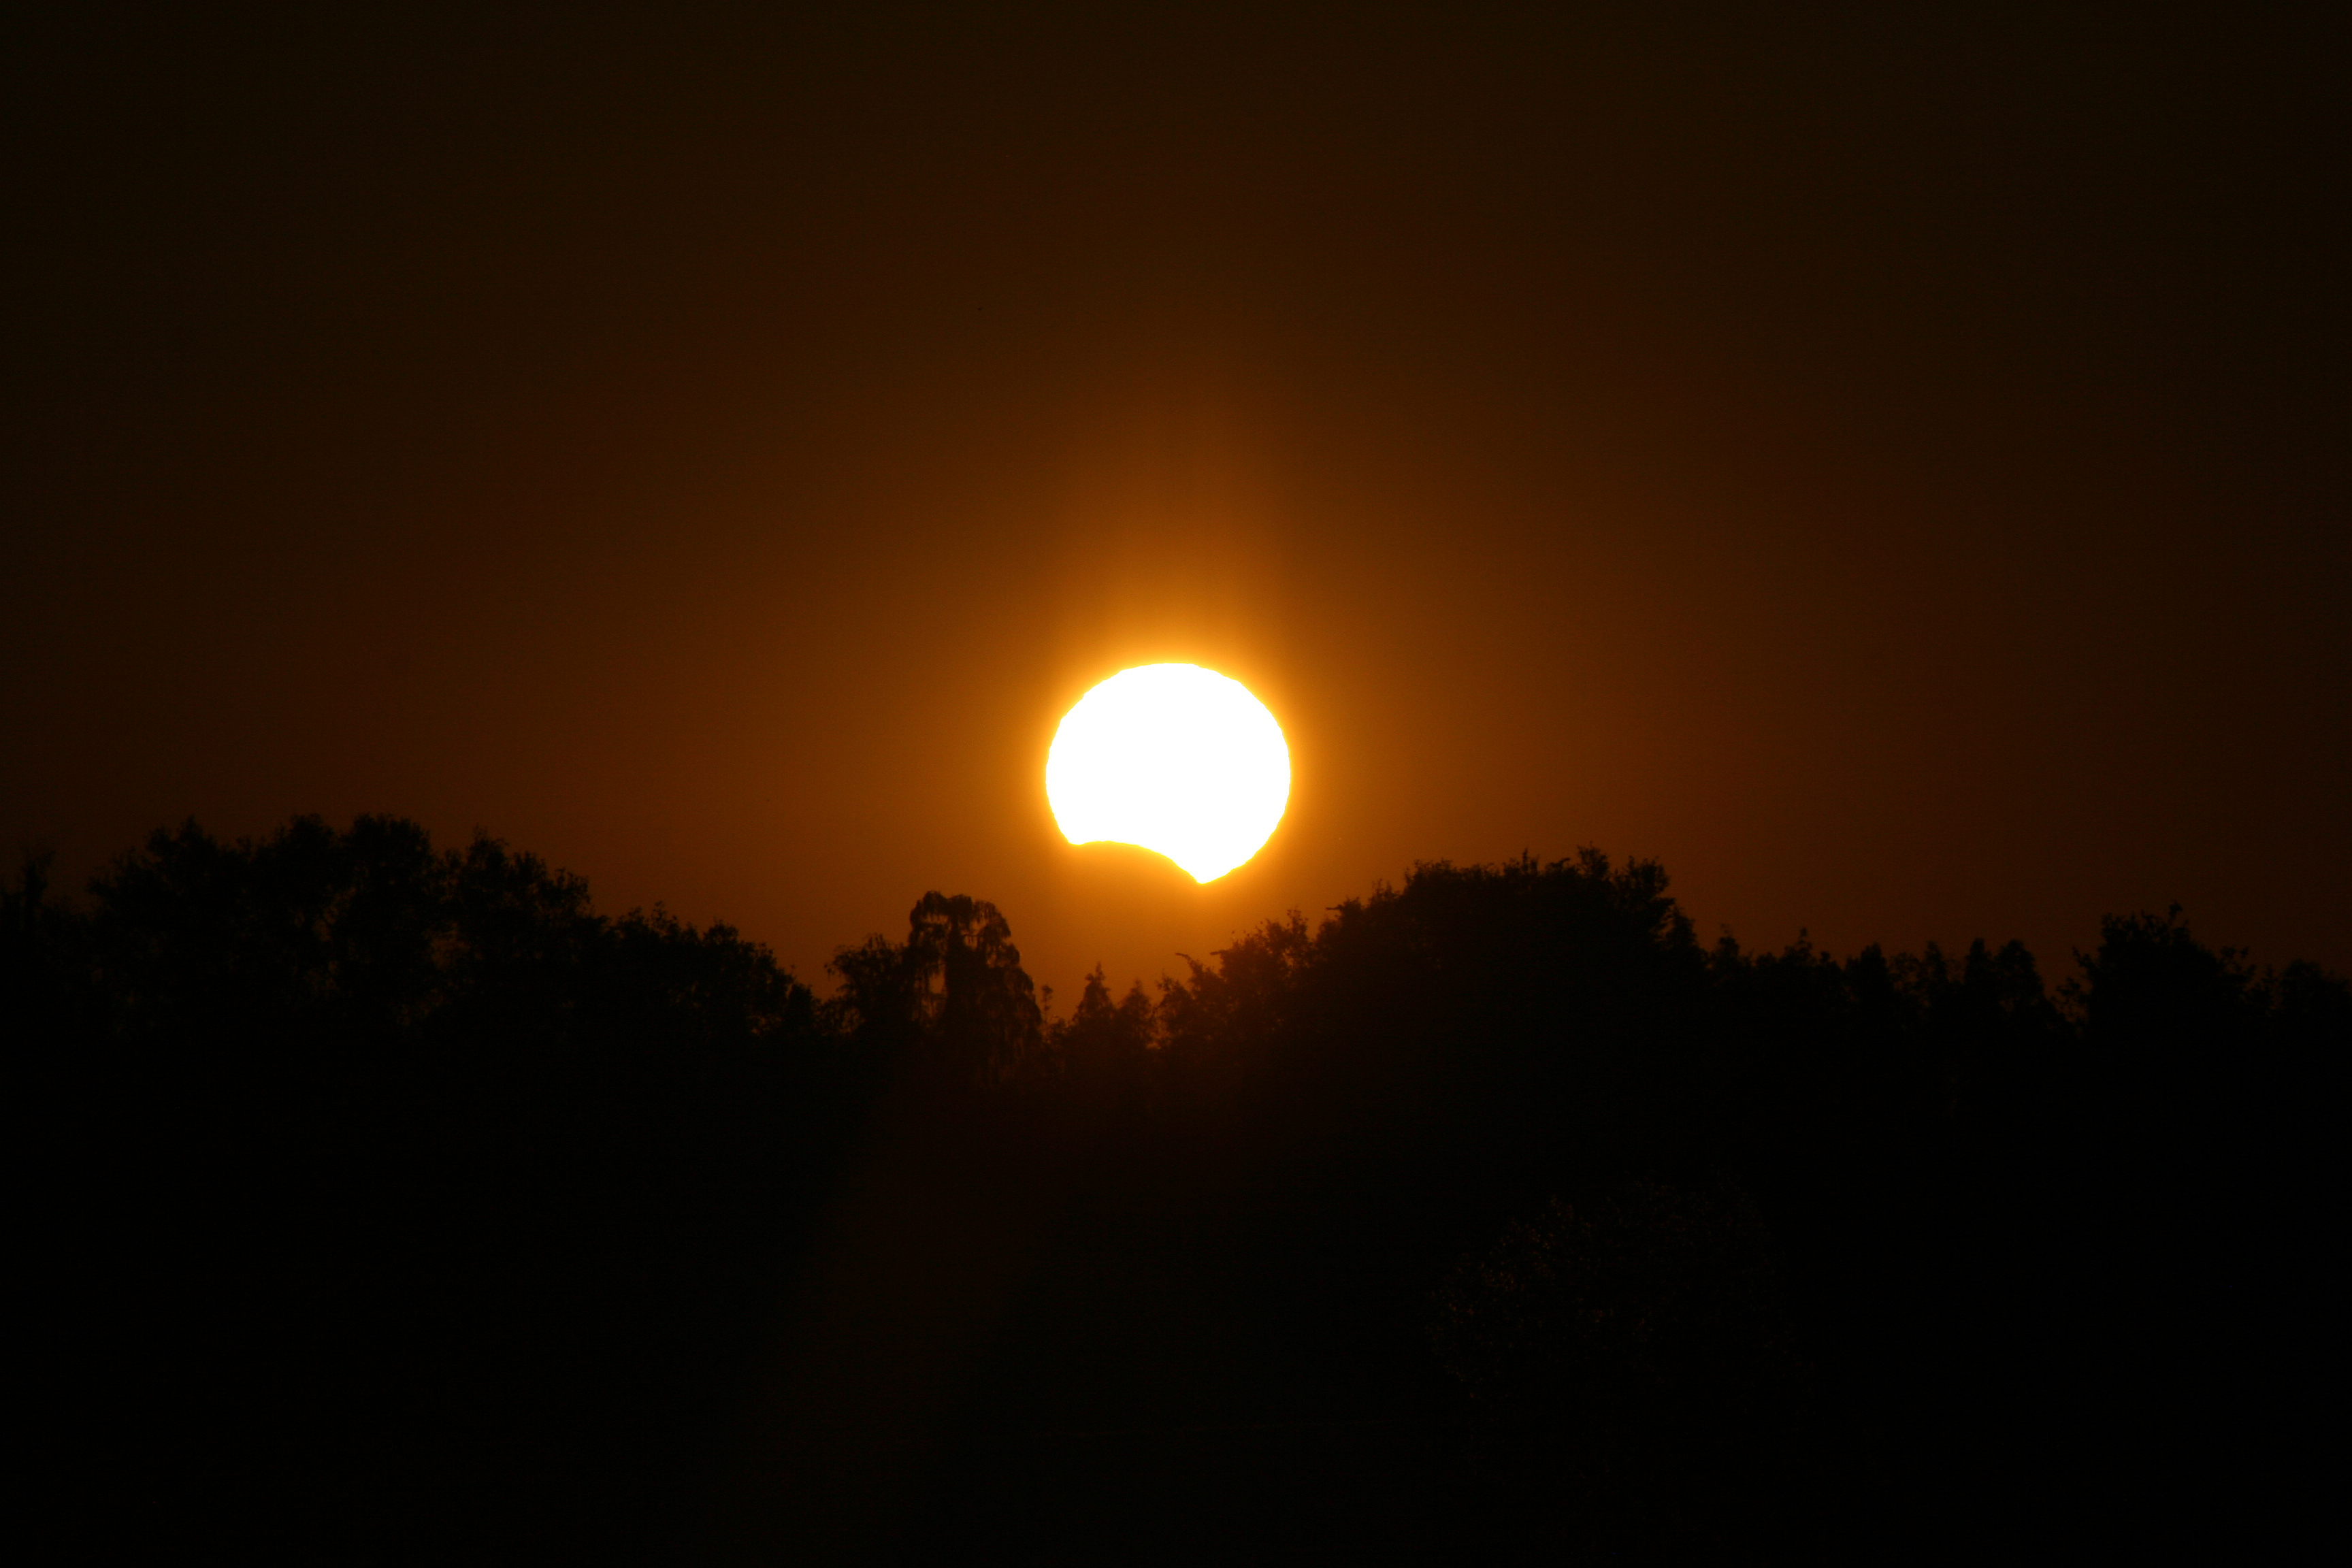 Partial Solar Eclipse from Tampa Bay, Fla.: Nov. 3, 2013